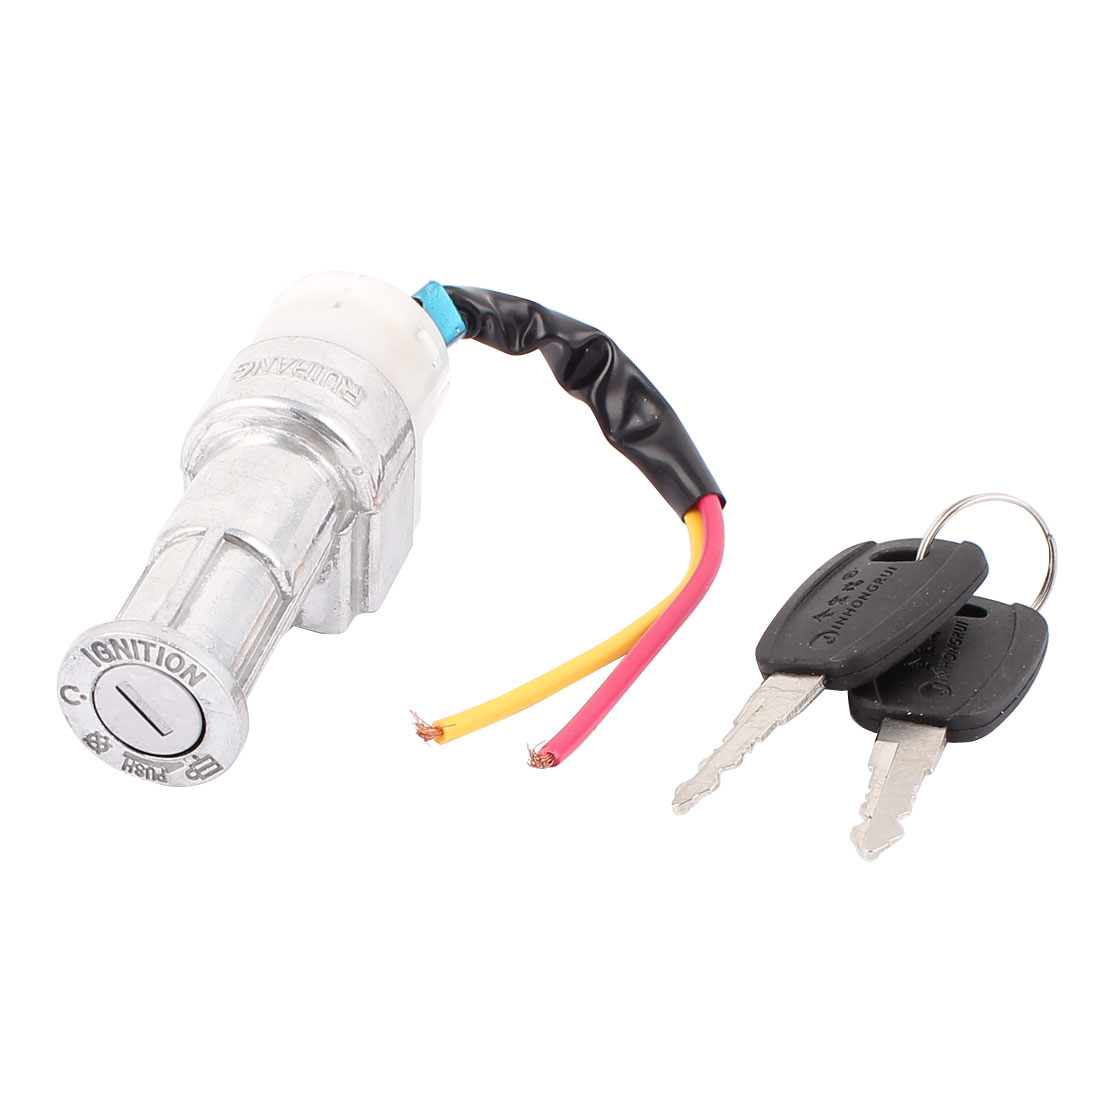 4.5mm Female Thread Key Switch 2 Wire Lead Motorcycle Electric Bike Lock Lockset